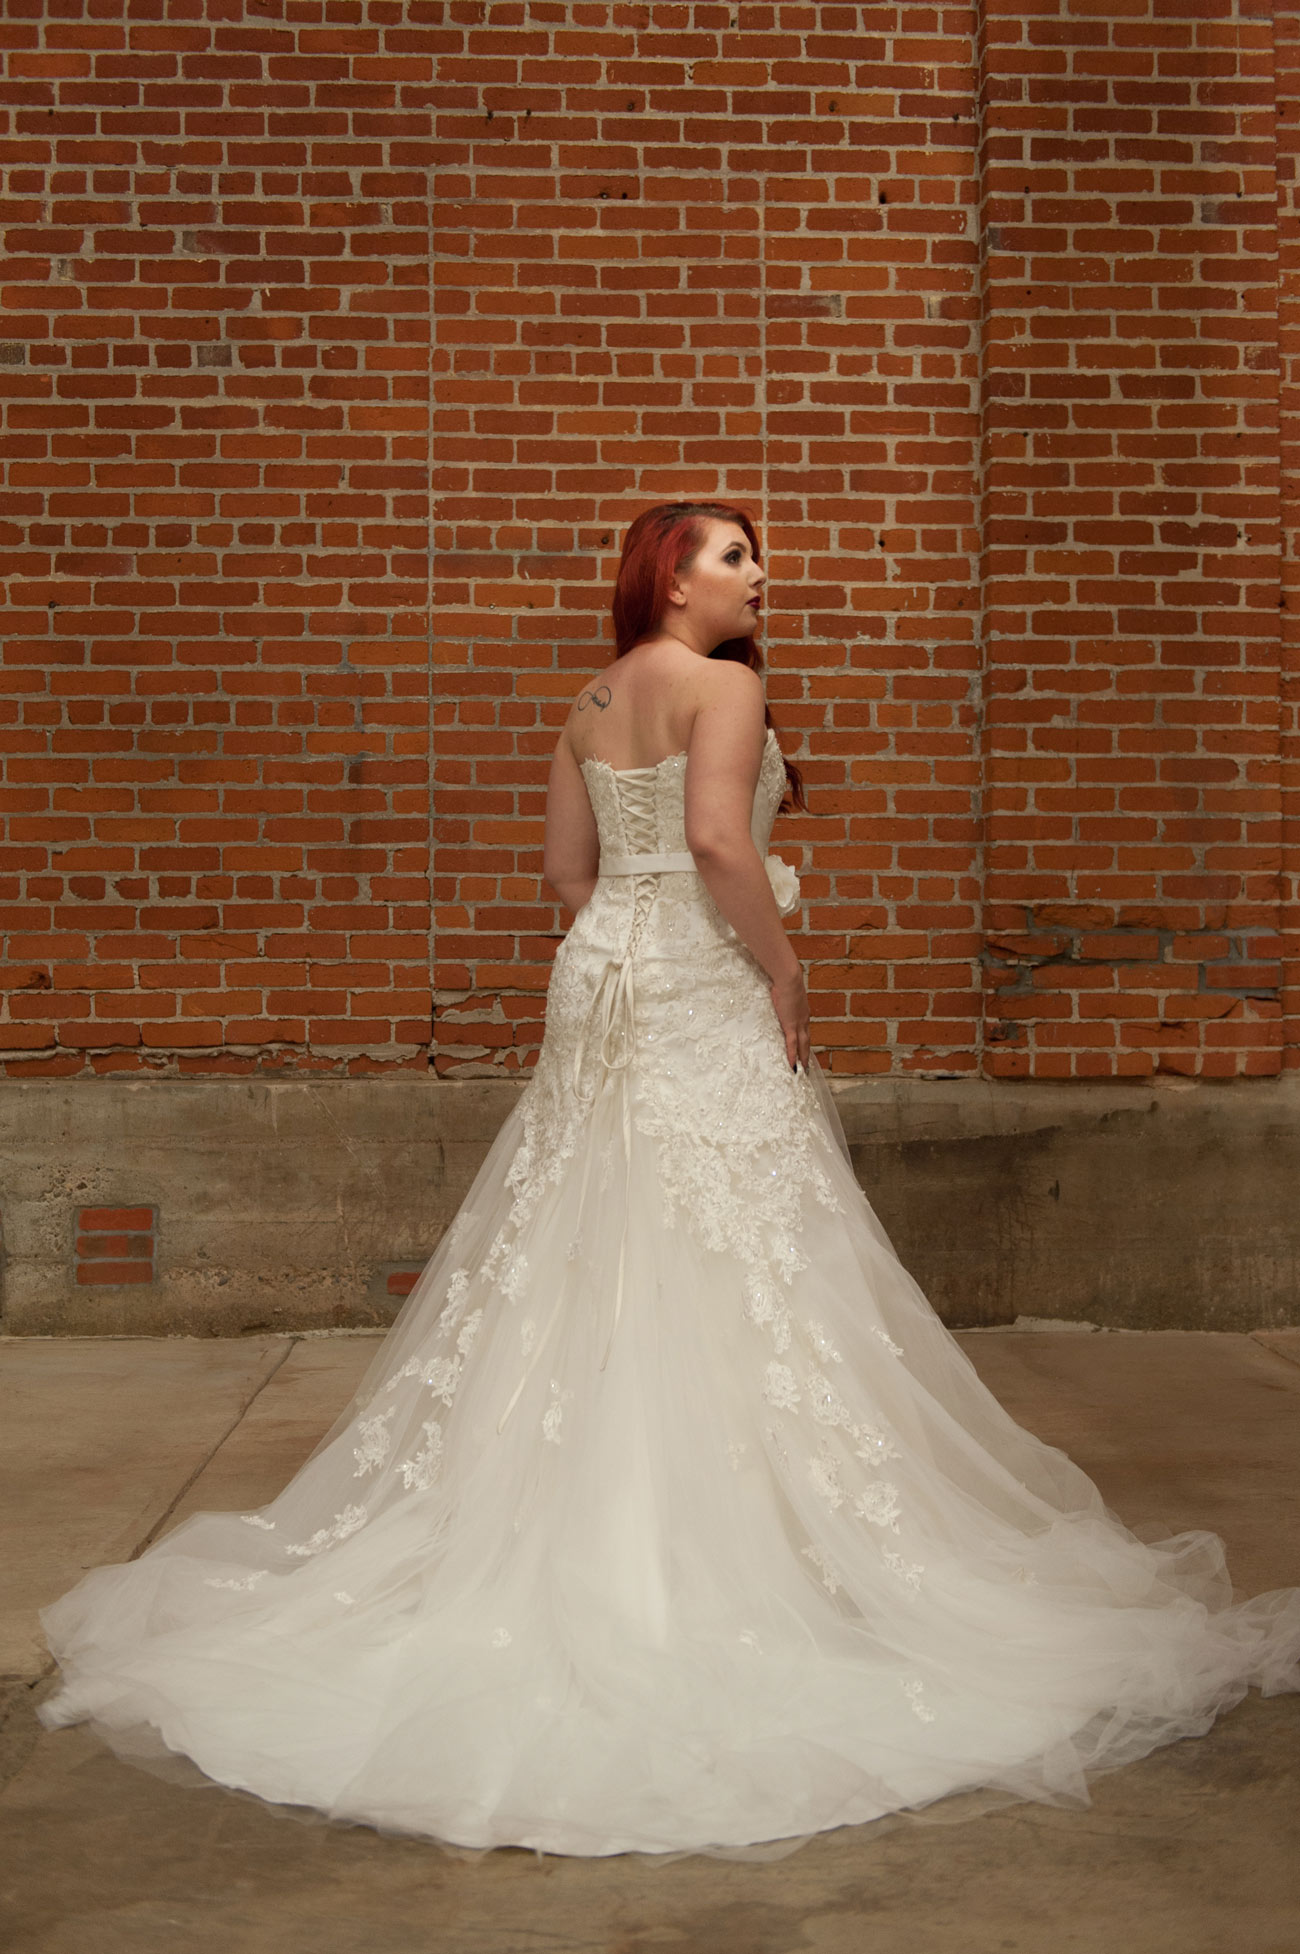 The Sophia Tolli Dress Has A Belt Which Attaches At The Flower On Front,  Thus Wrapping All The Way Around The Waist. The Lacing Loops Were The Same  Side To ...